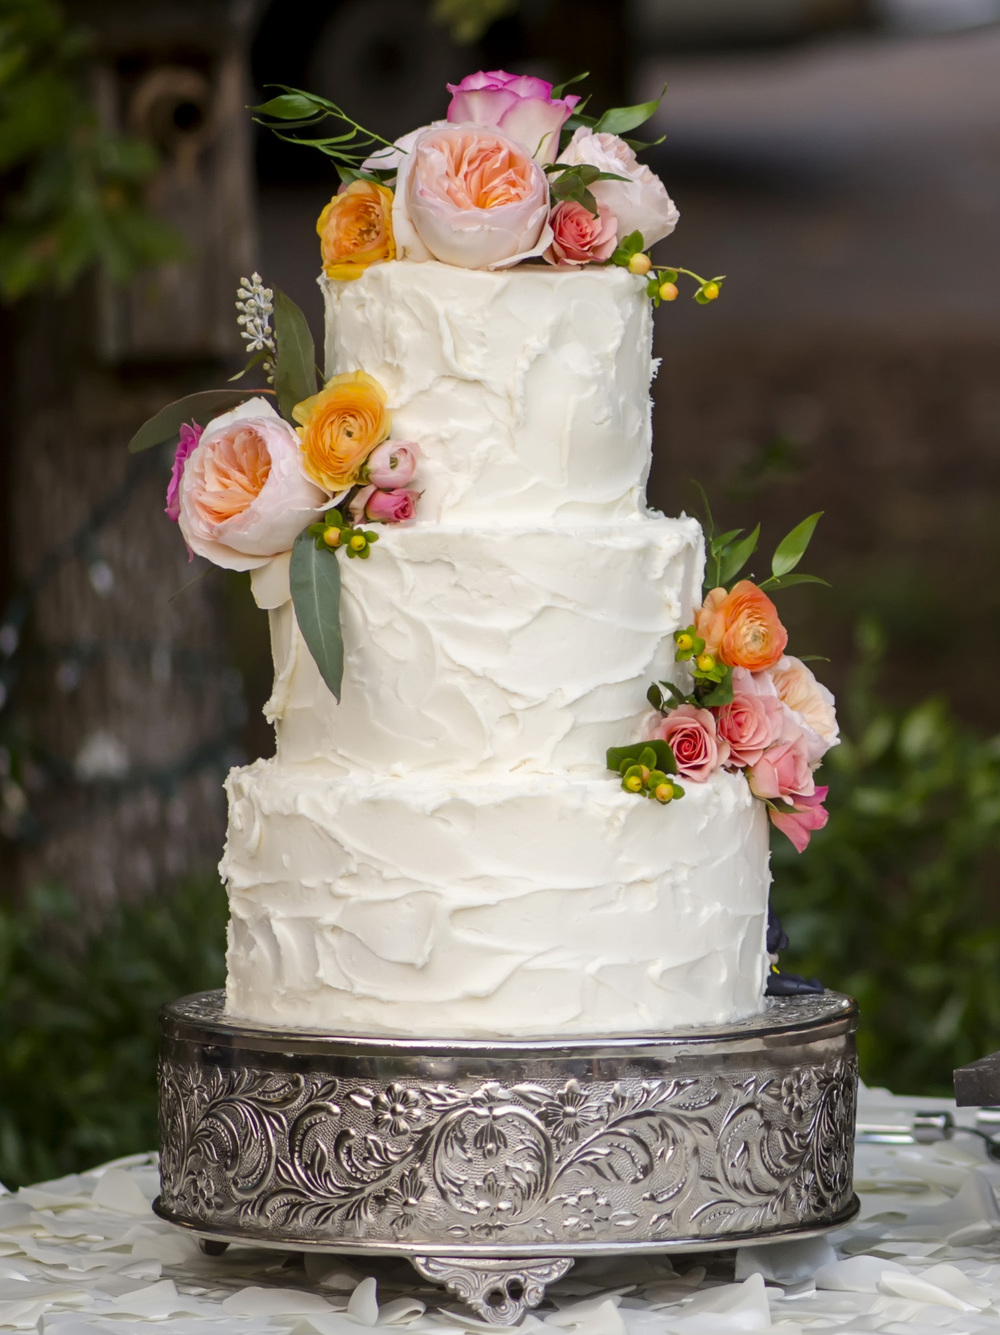 Cake from front - this was a wide shot from 1747.JPG